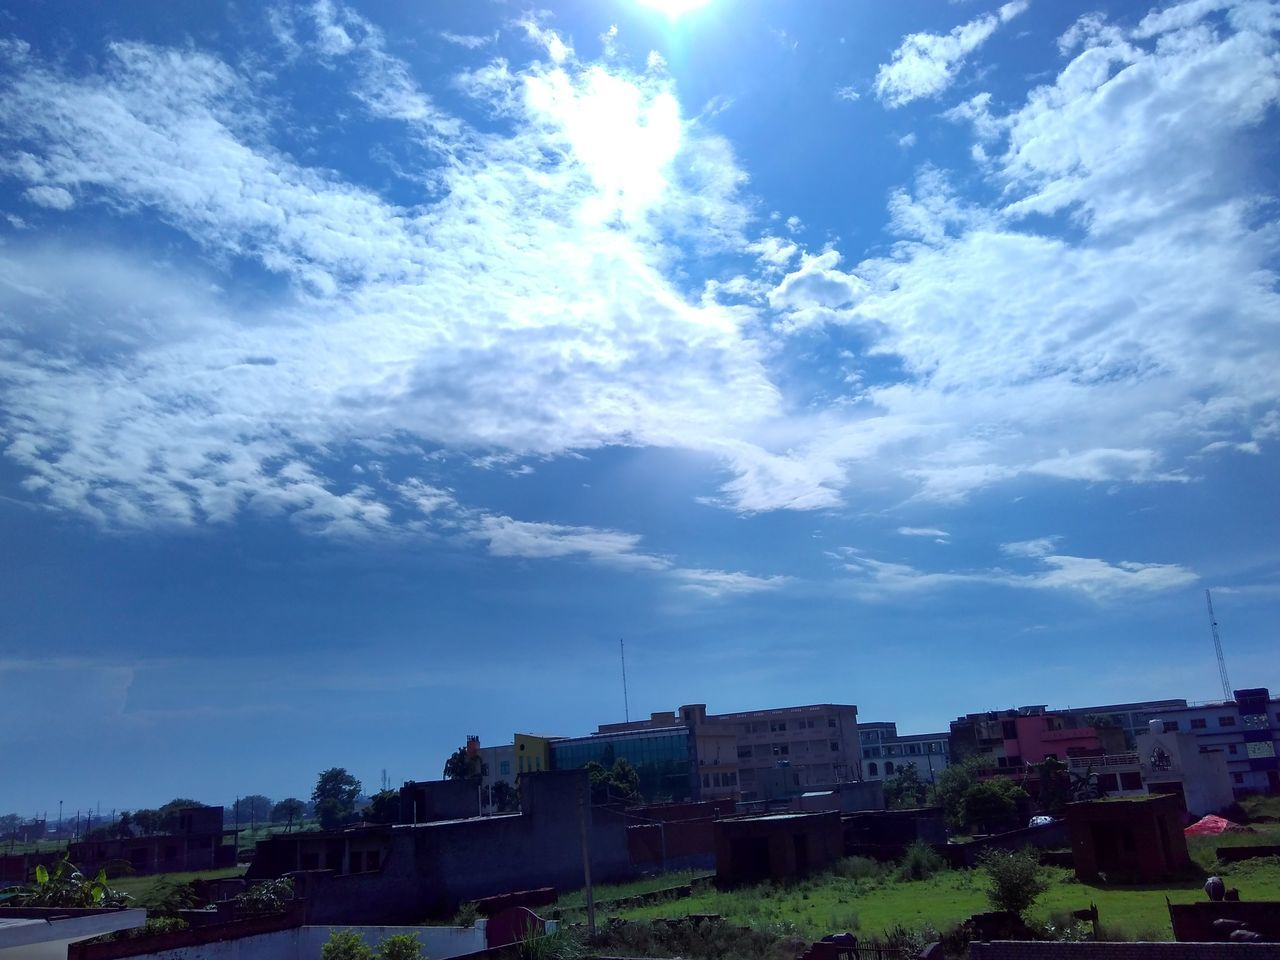 building exterior, sky, built structure, architecture, cloud - sky, house, outdoors, residential building, day, no people, nature, tree, city, beauty in nature, cityscape